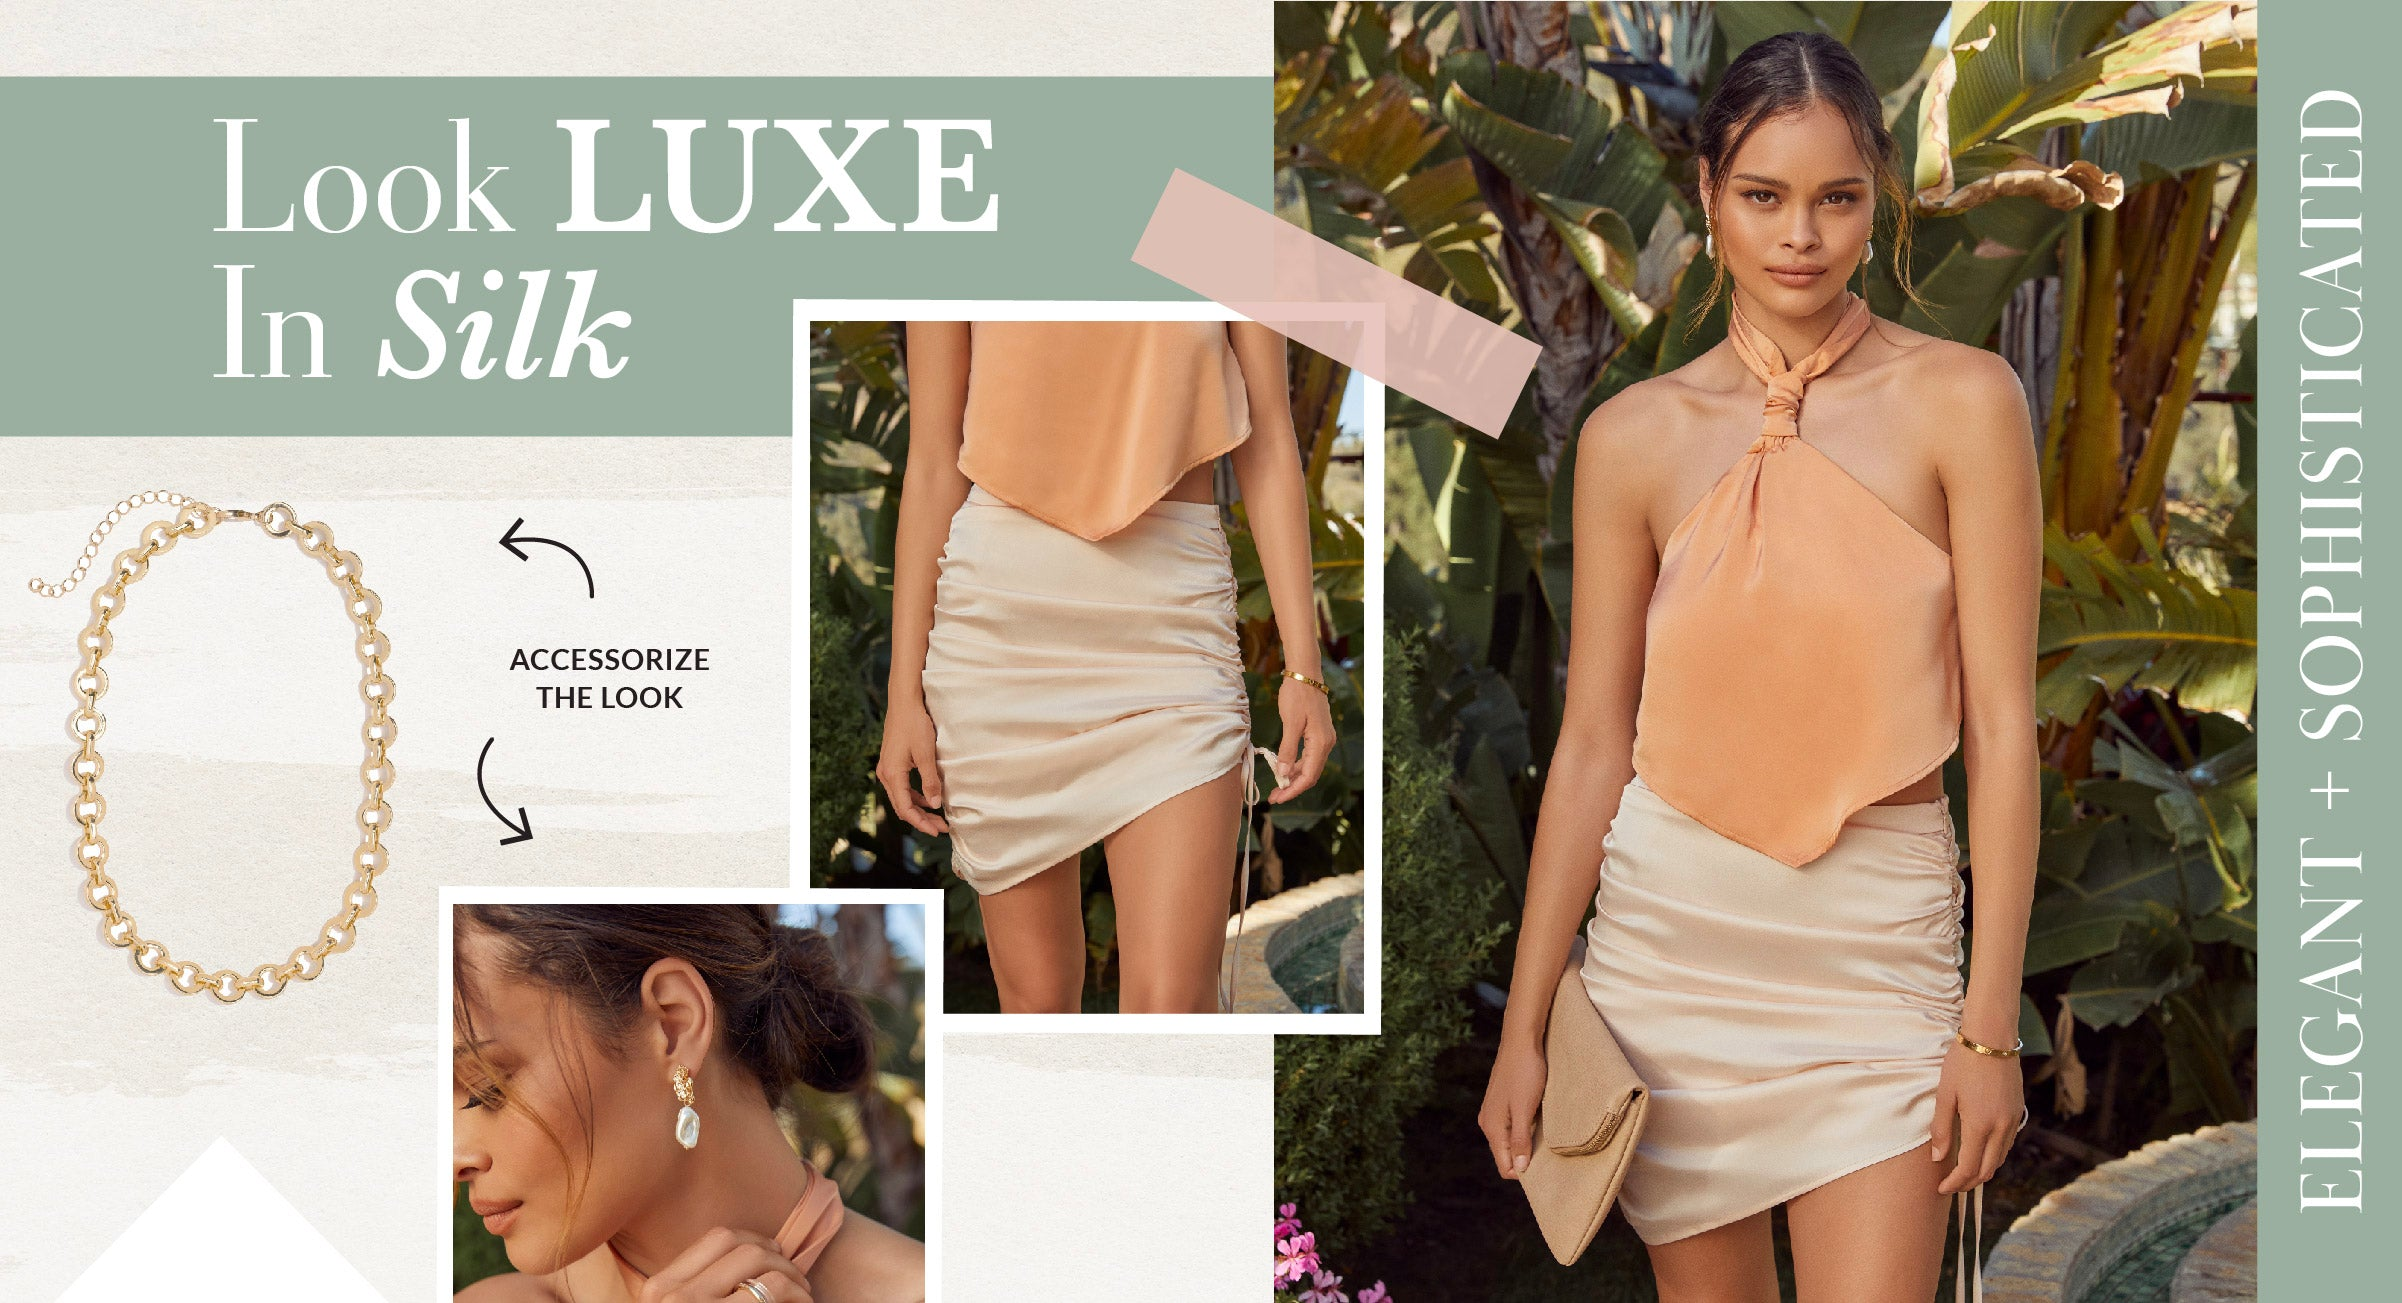 Anything satin instantly makes you look and feel like the main character. The silky material will feel like butter on your slightly sunburnt skin. Pair satin with satin and you've never felt more luxurious!